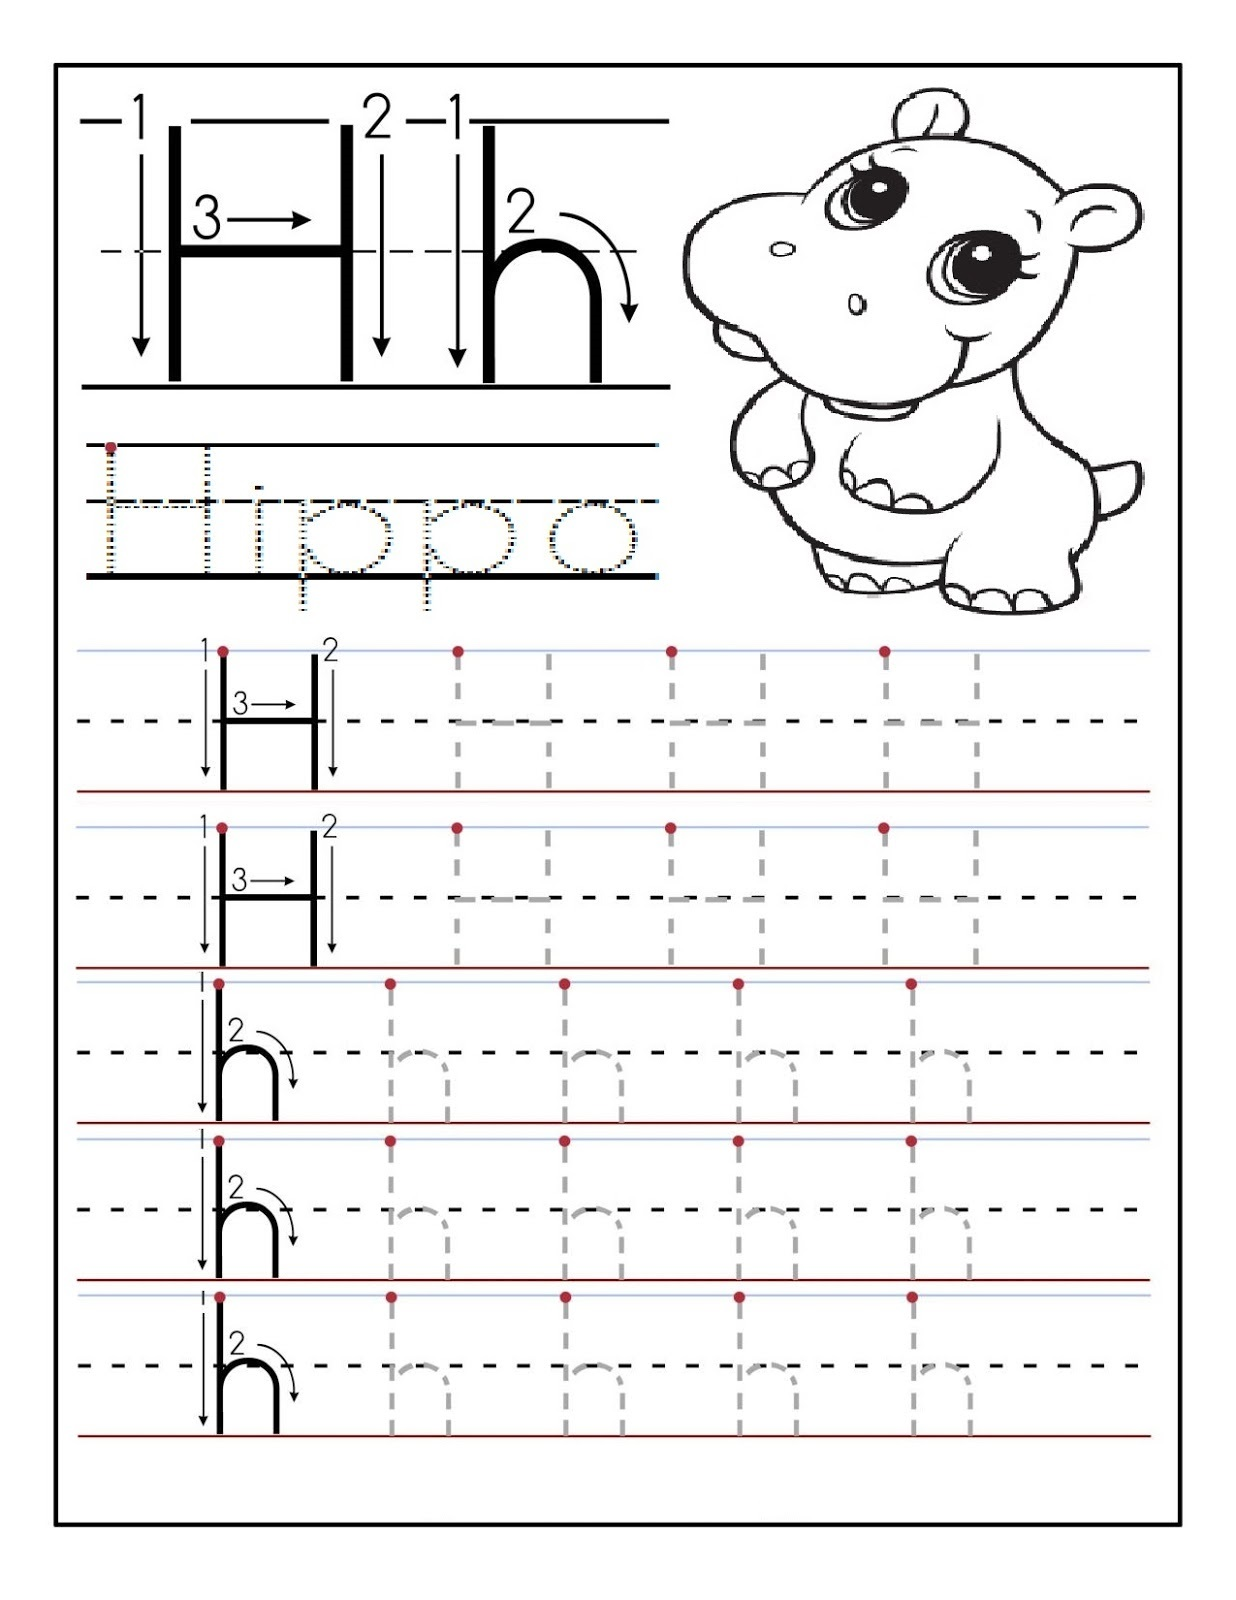 Letter H Worksheets for Preschool - Preschool Crafts